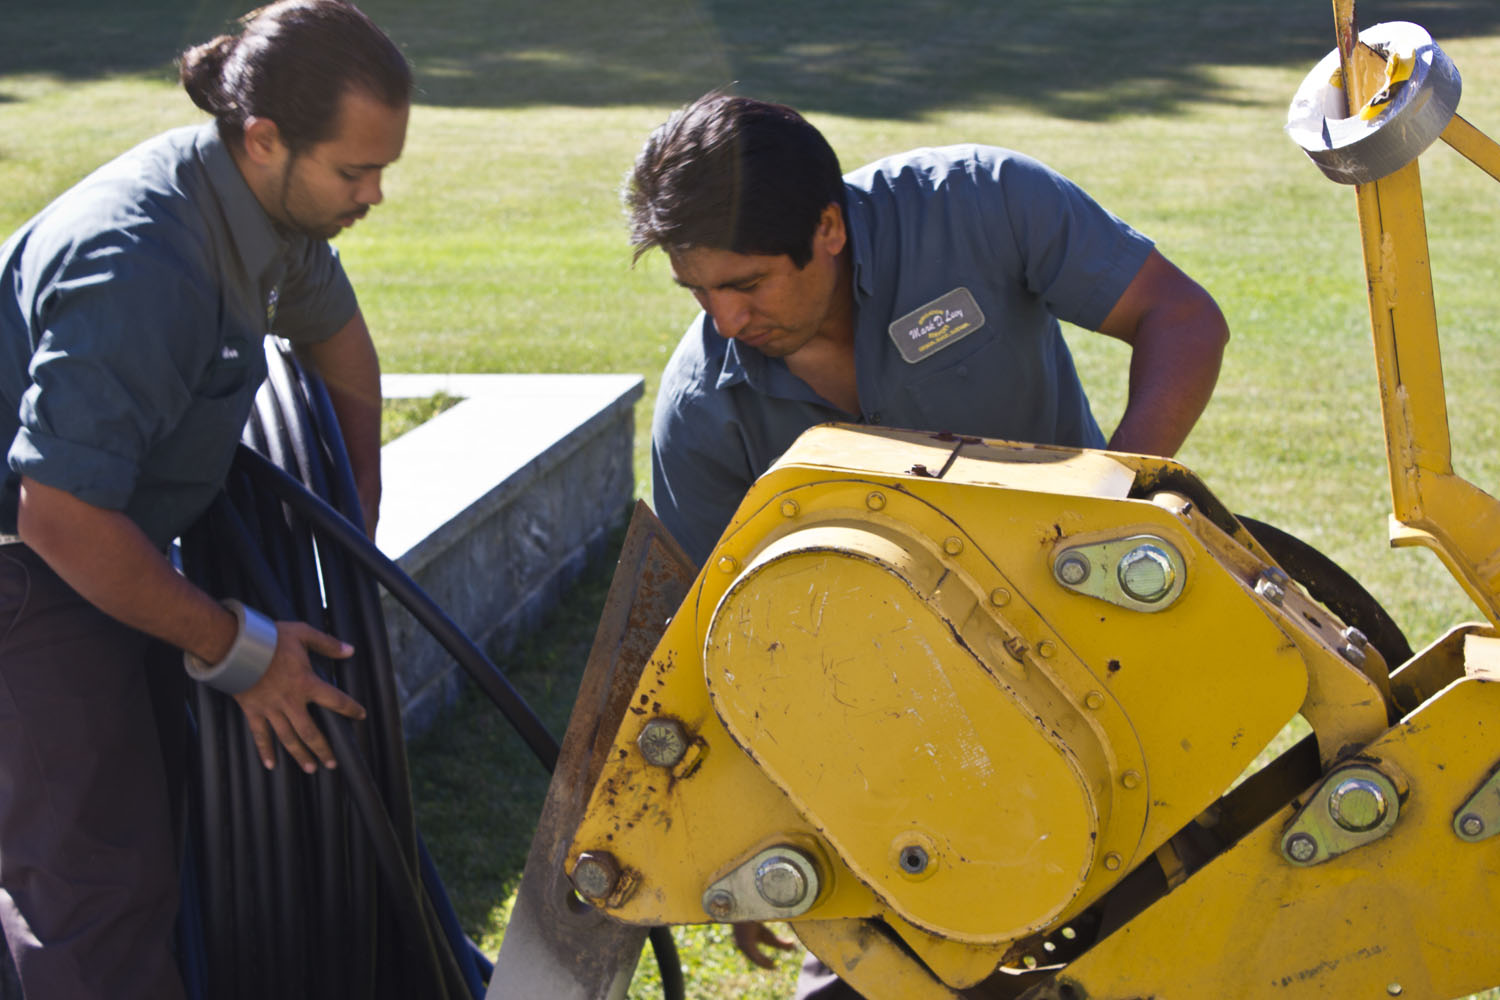 guys setting up irrigation trench machine.jpg